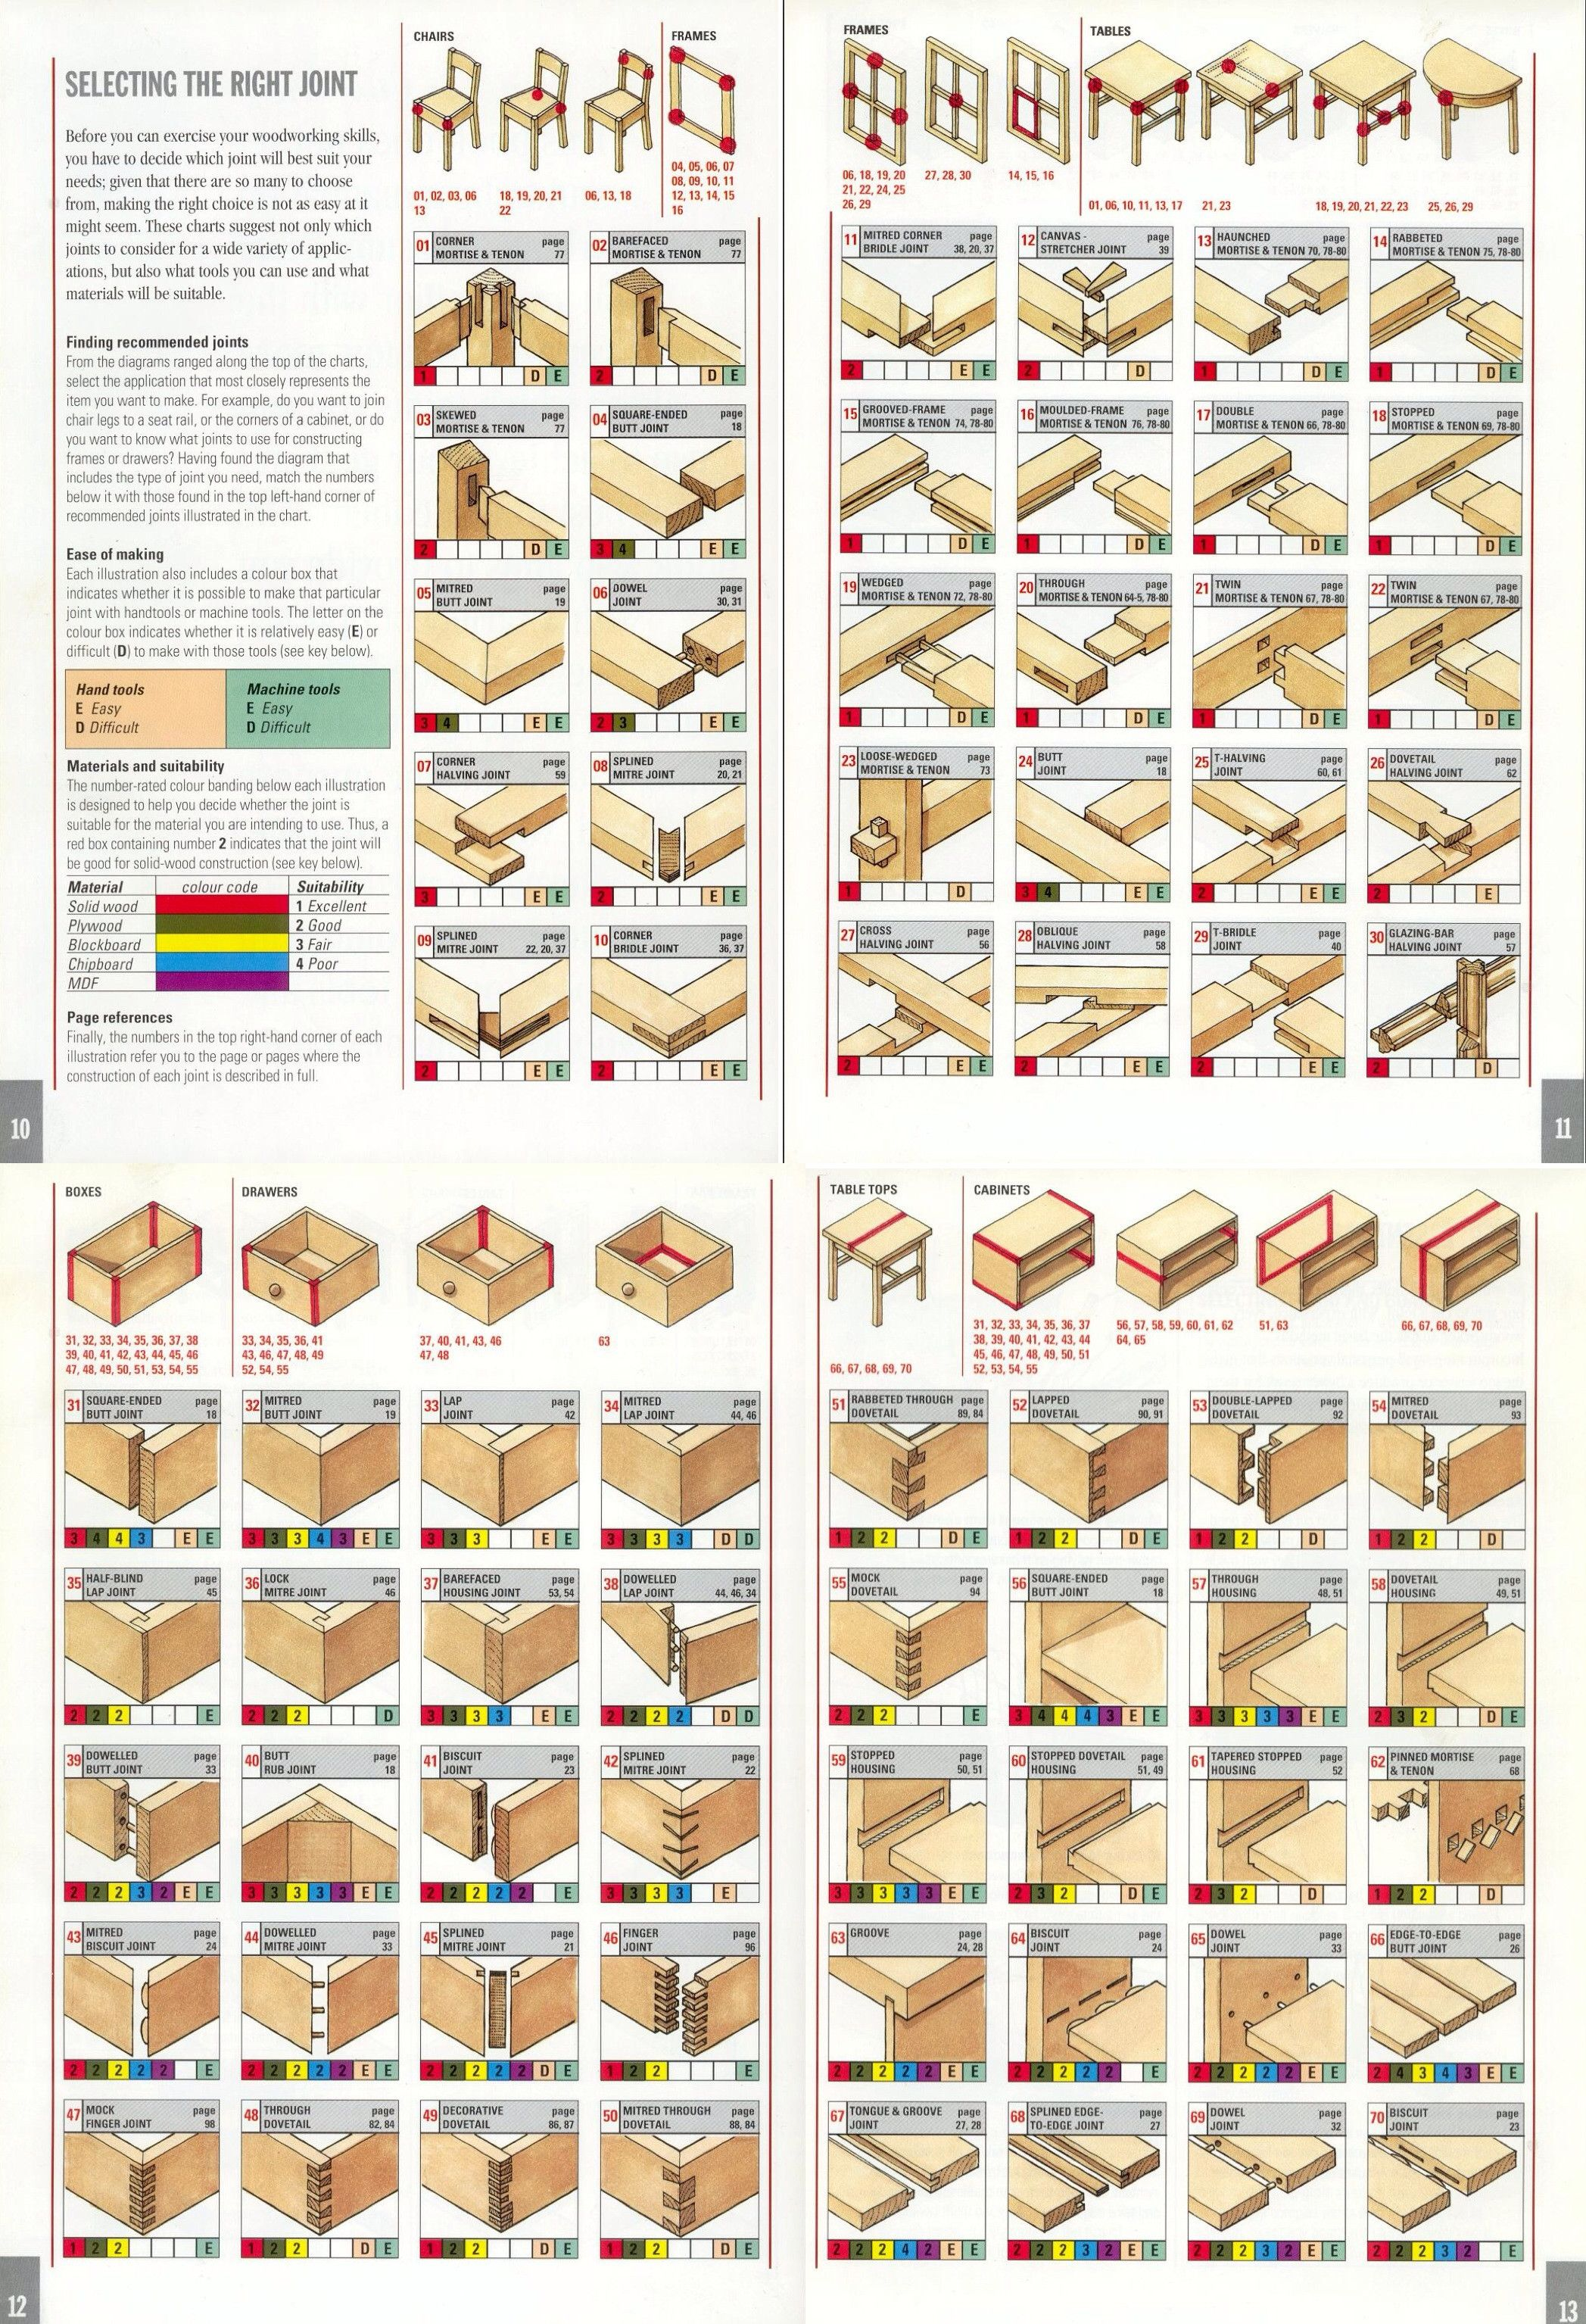 Kitchen cabinet drawer joints - Selecting The Right Joint Chairs Tables Frames Boxes Drawers And Cabinets